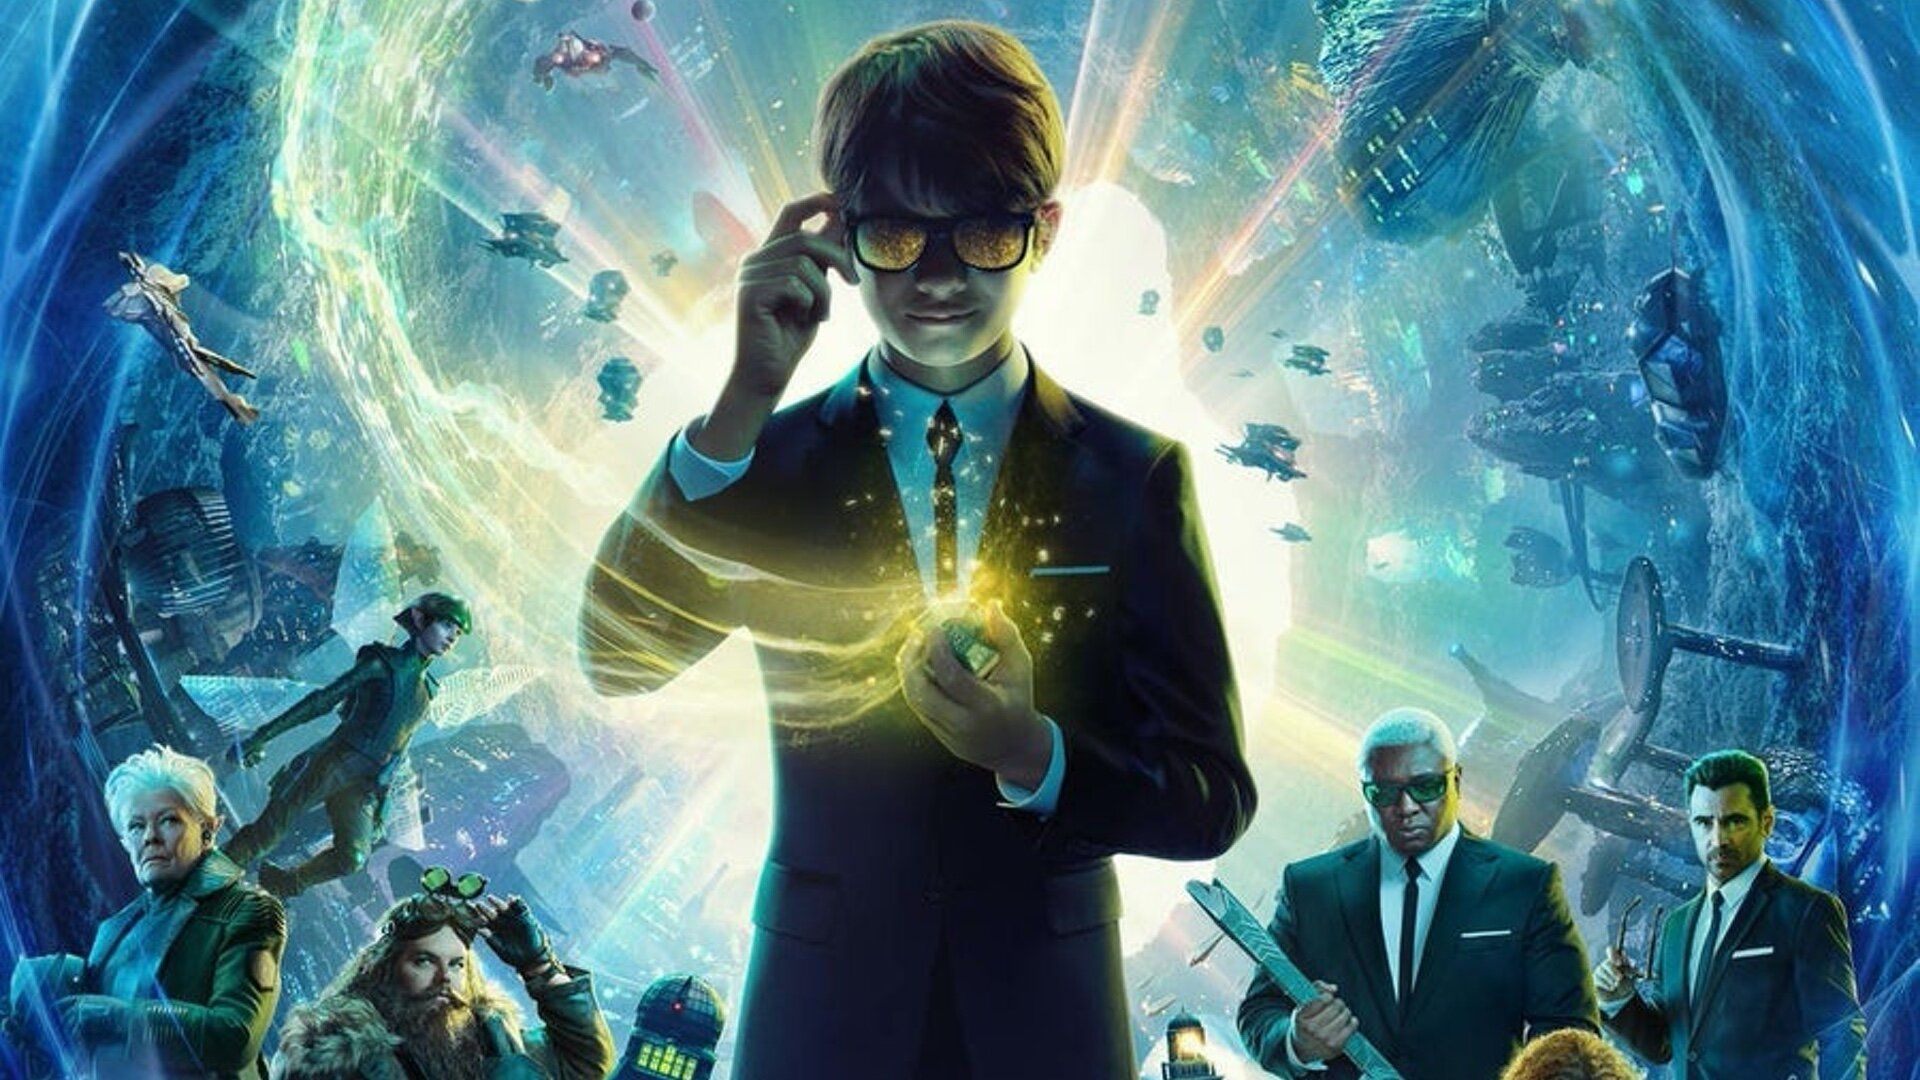 Adventurous New Trailer For Disney's Fantasy Film ARTEMIS FOWL